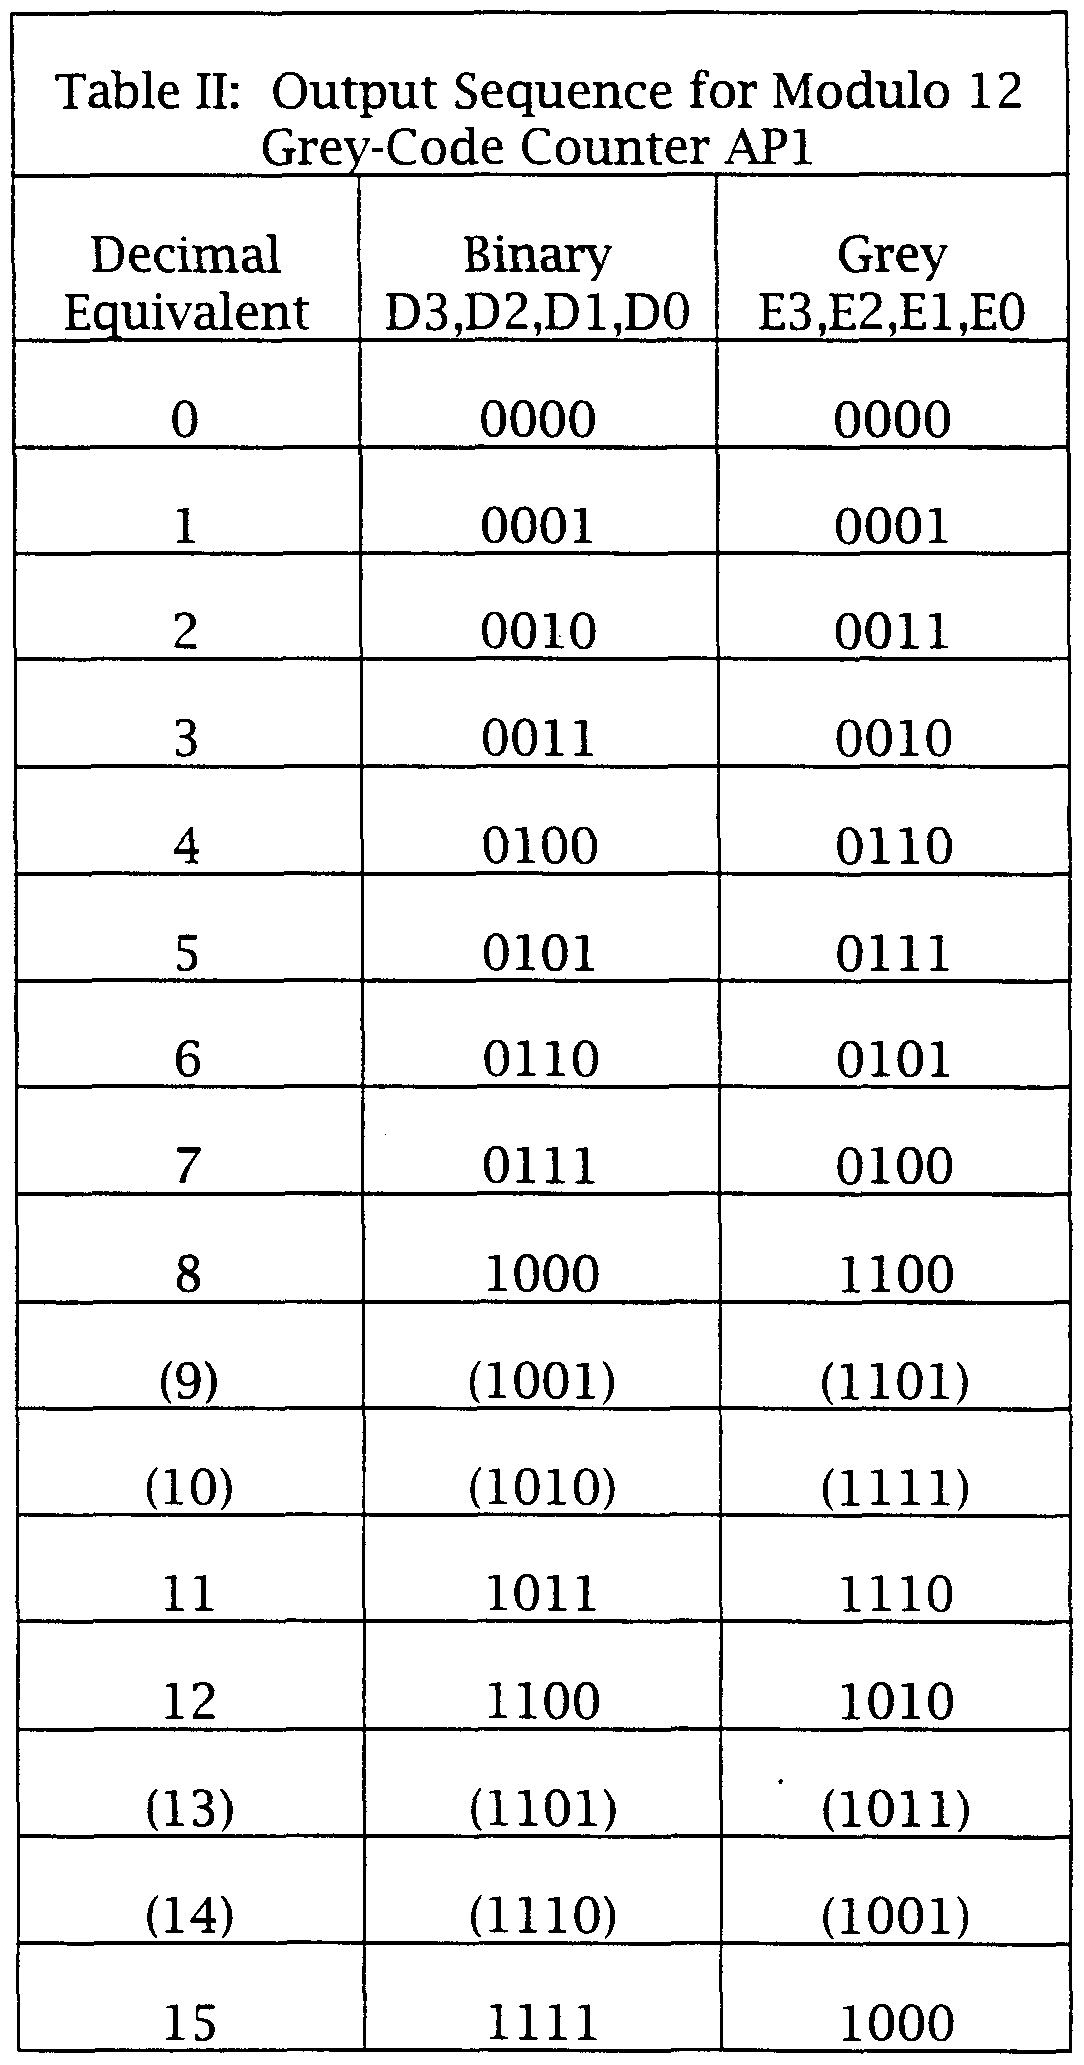 Wo2001033716a1 gray code counter having a binary incrementer and figure imgf0000130001 nvjuhfo Choice Image